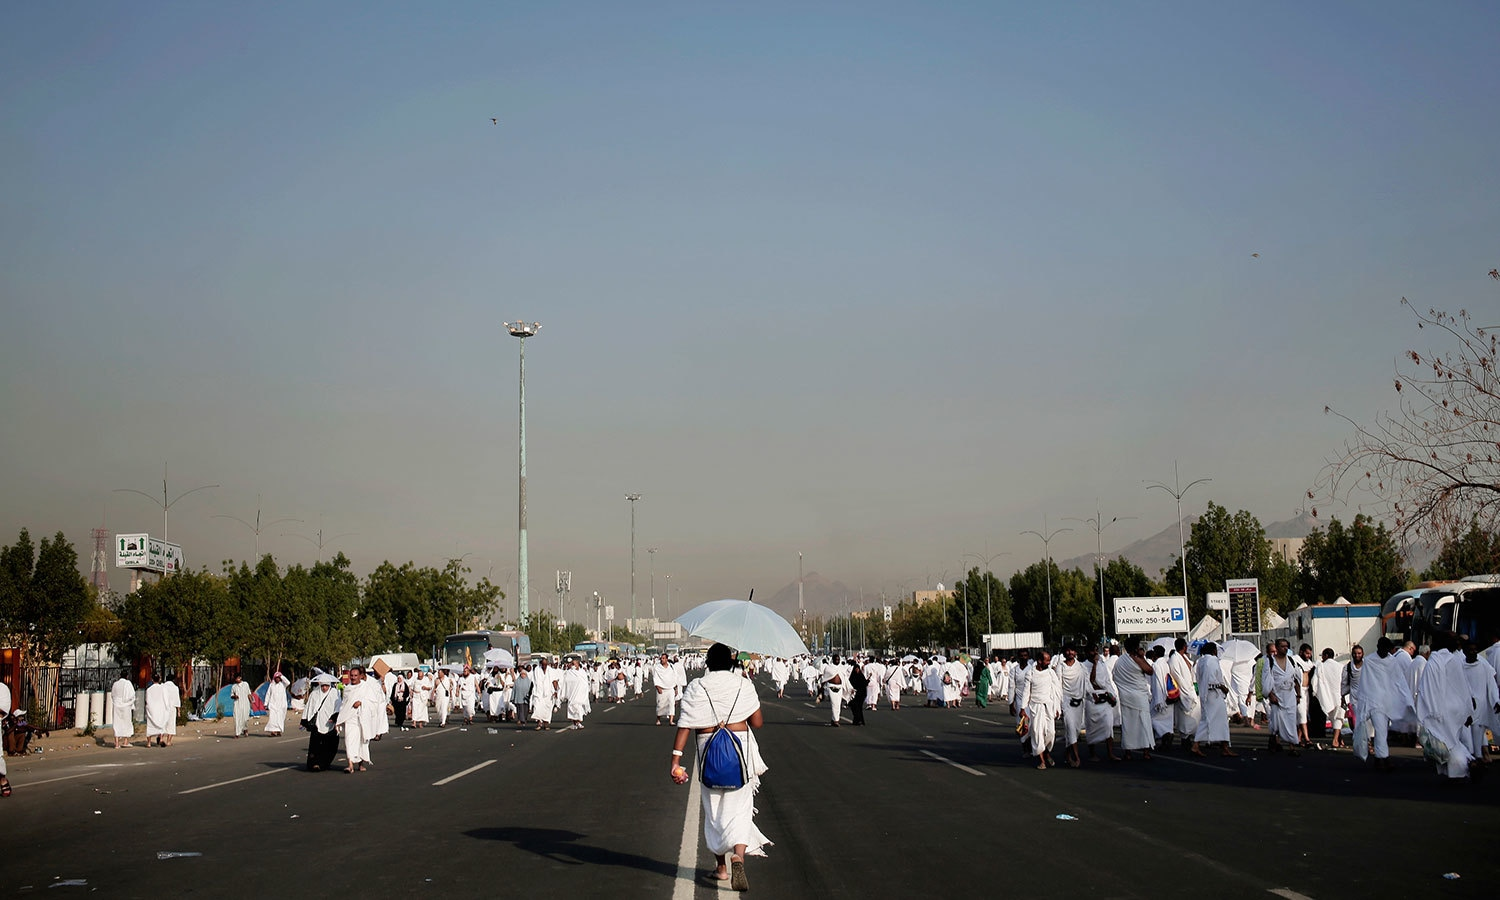 Pilgrims make their way in Arafat, during the annual Haj pilgrimage, near the holy city of Makkah. — AP